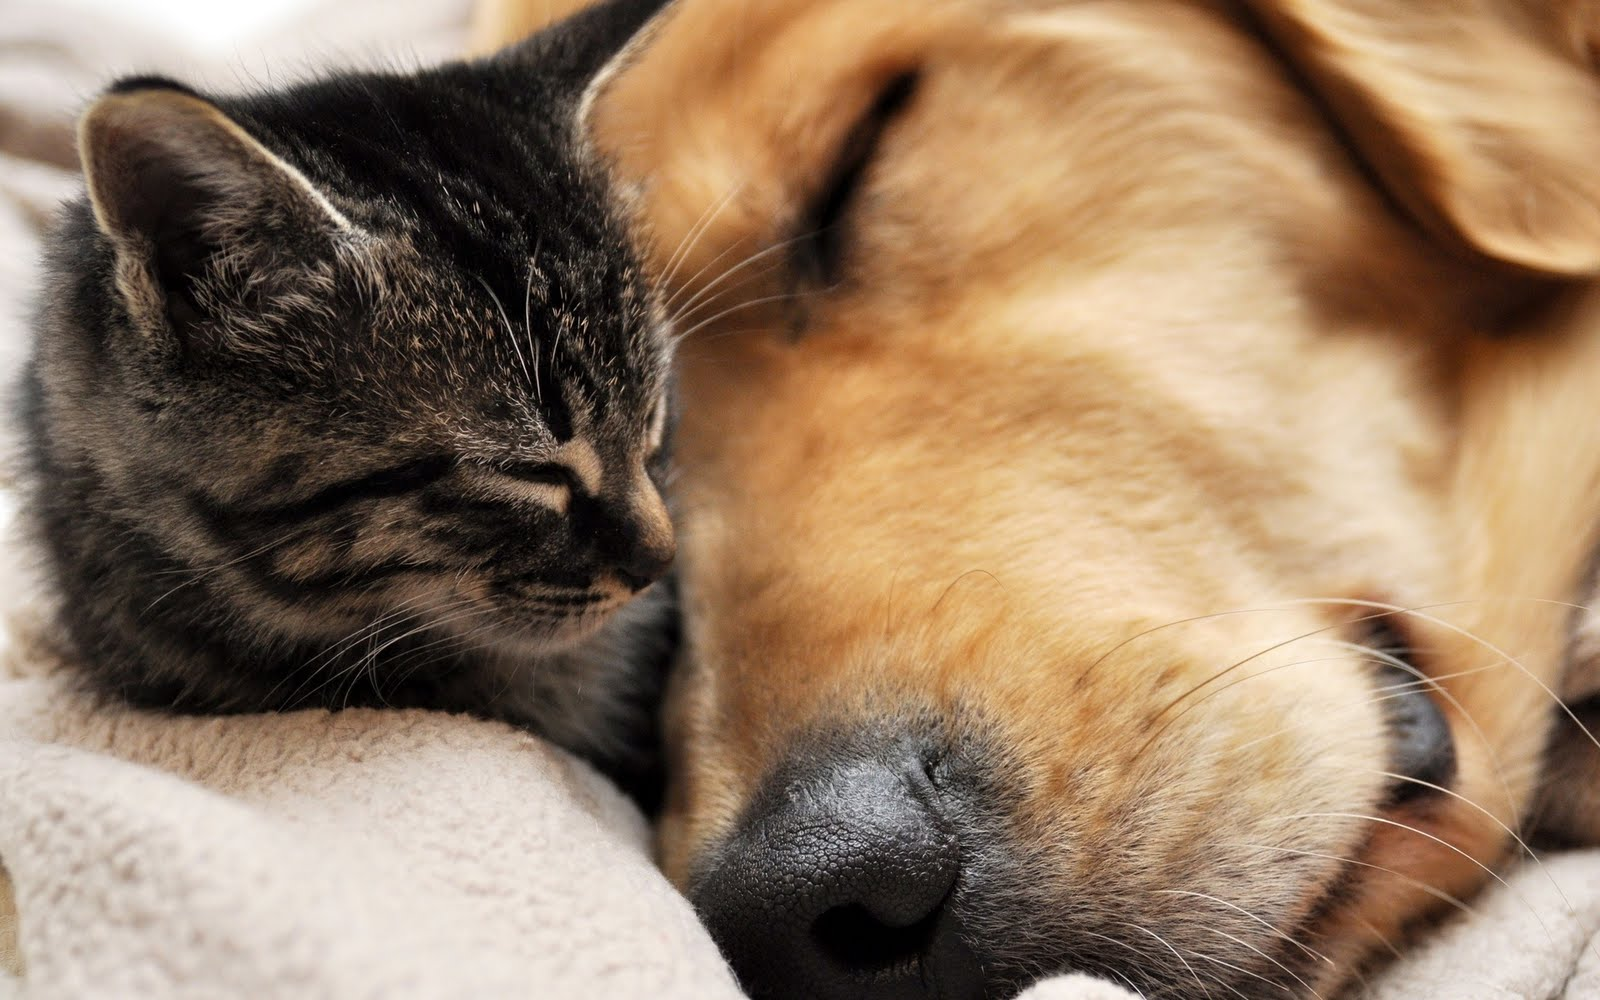 Free Download Similar Cute Cat And Dog Wallpaper Dowload Cute Christmas Dog Pictures 1600x1000 For Your Desktop Mobile Tablet Explore 44 Cute Cats And Dogs Wallpaper Adorable Puppy Wallpapers